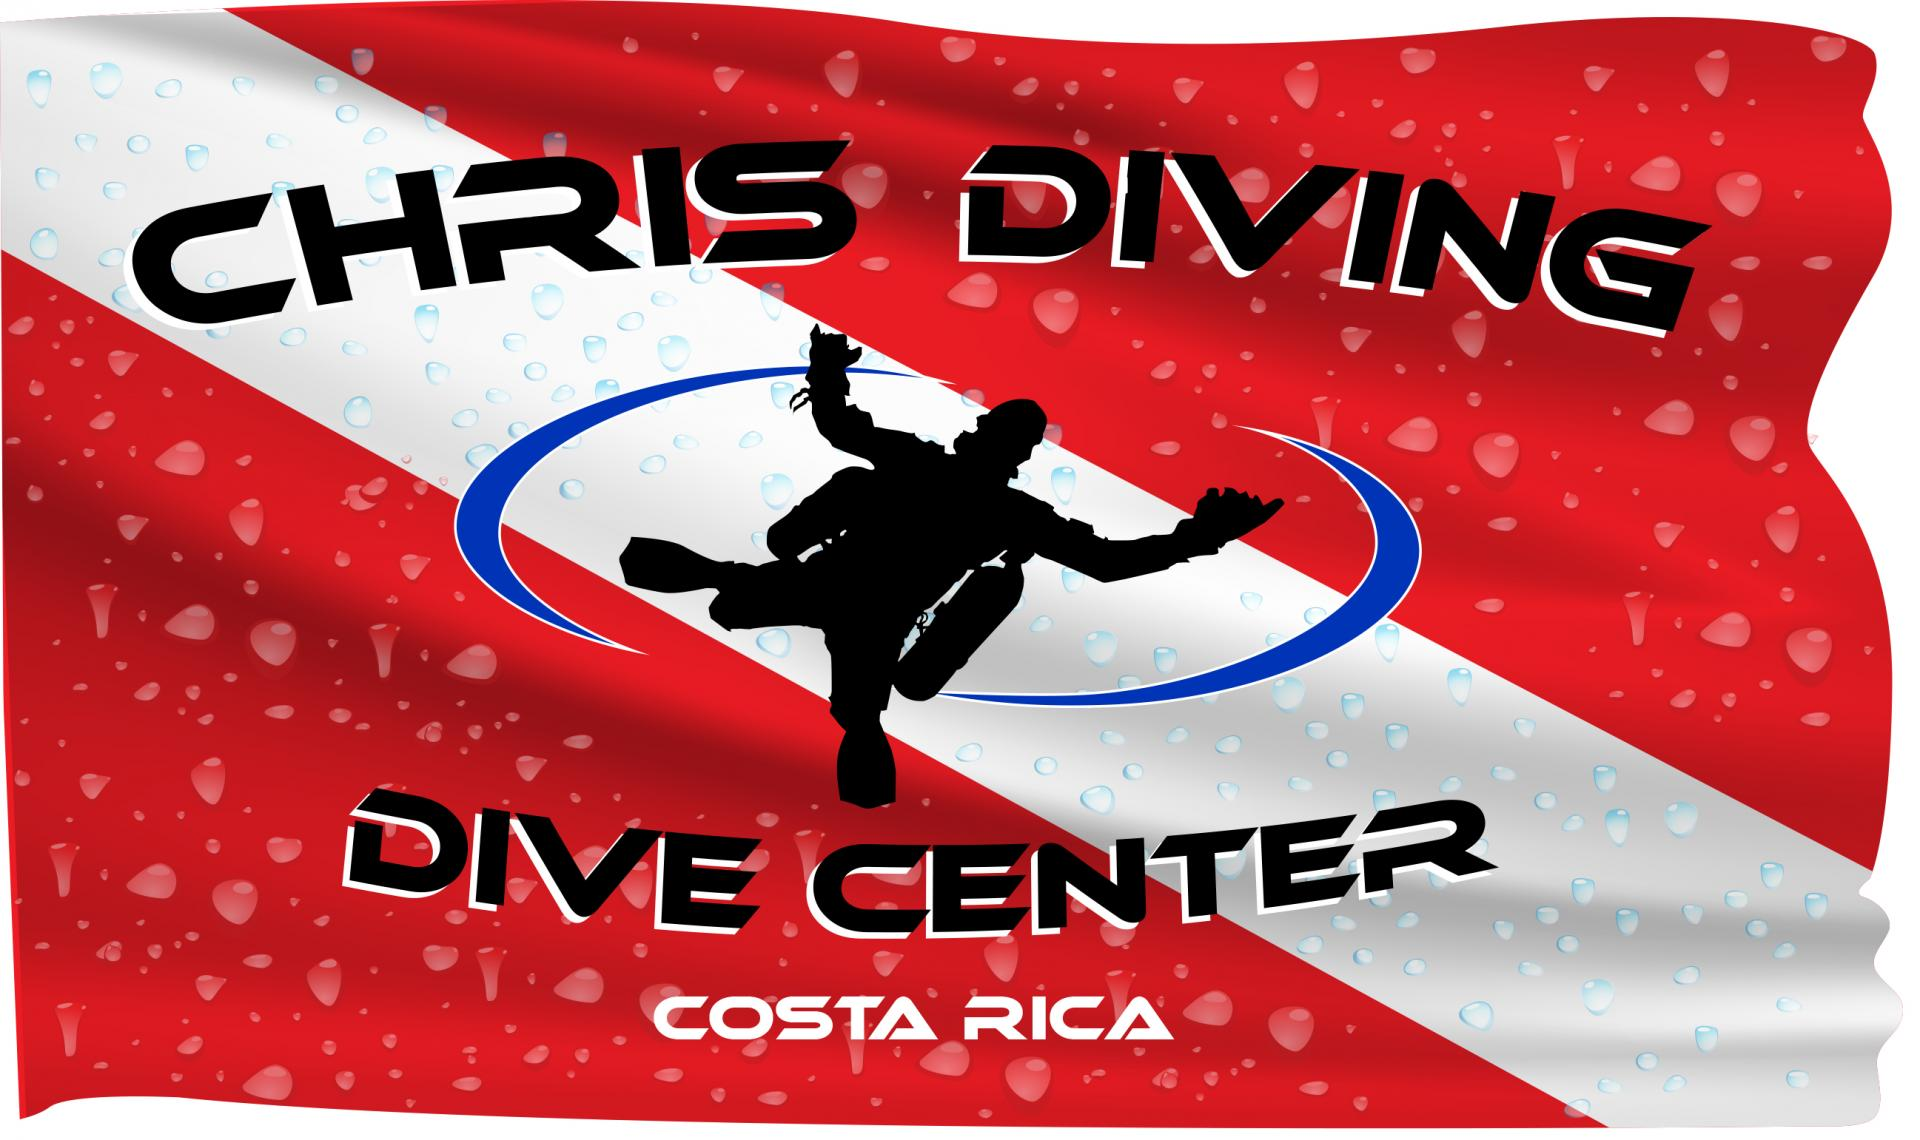 Chrisdiv logo